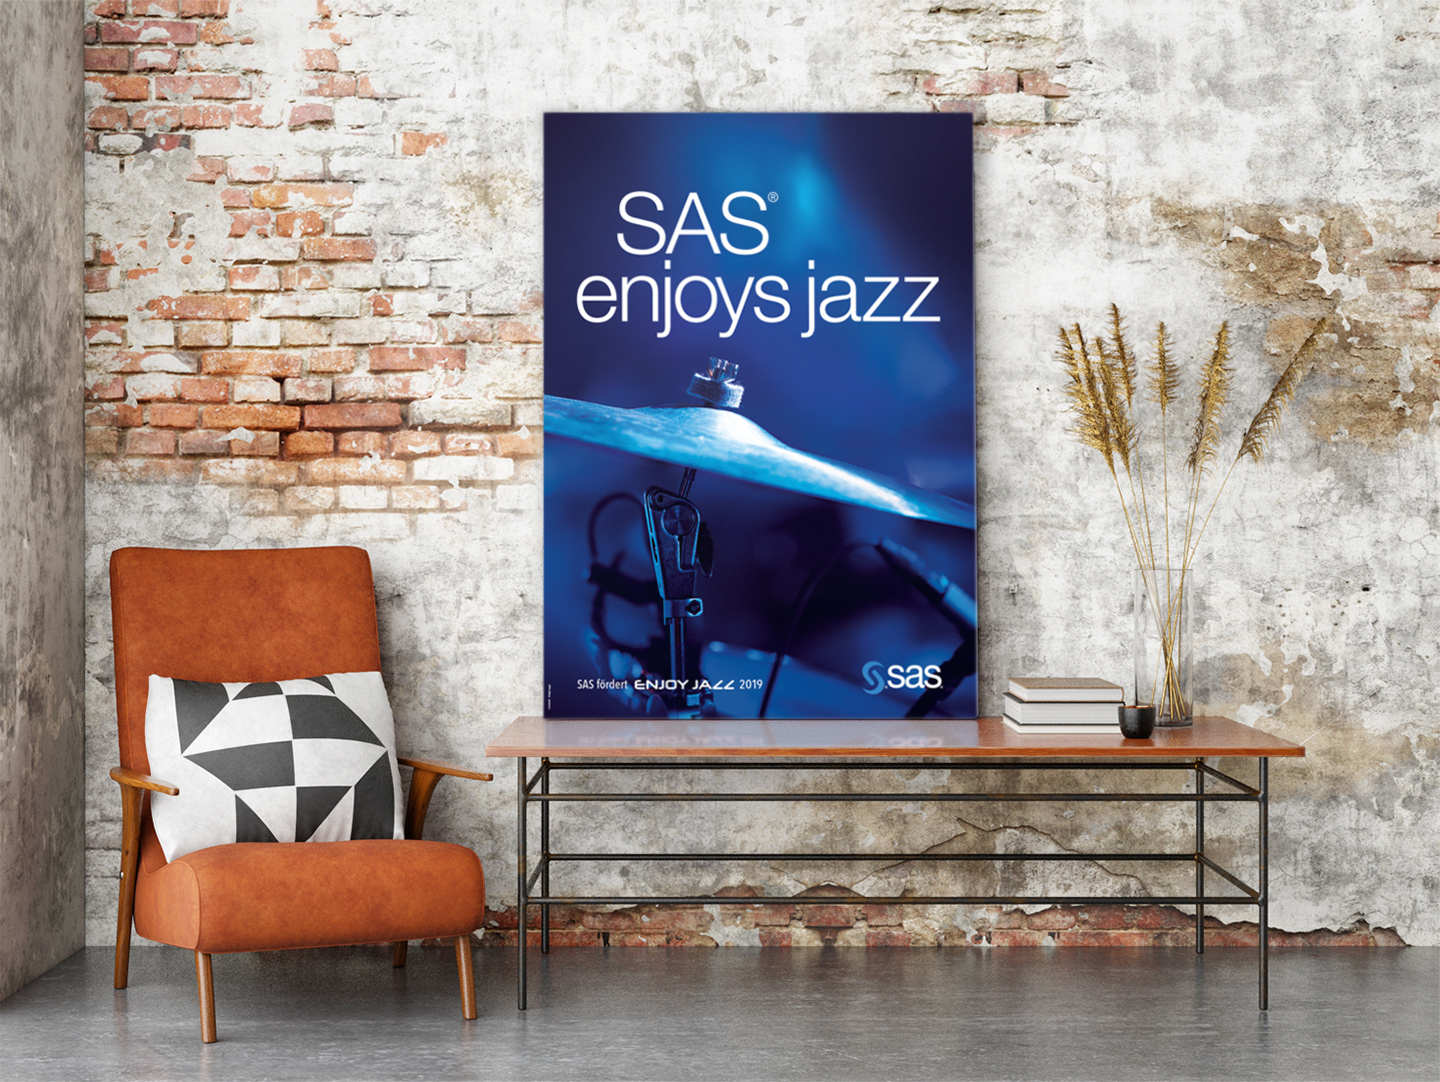 P12-Referenz SAS EnjoyJazz 2019 in Heidelberg.jpg